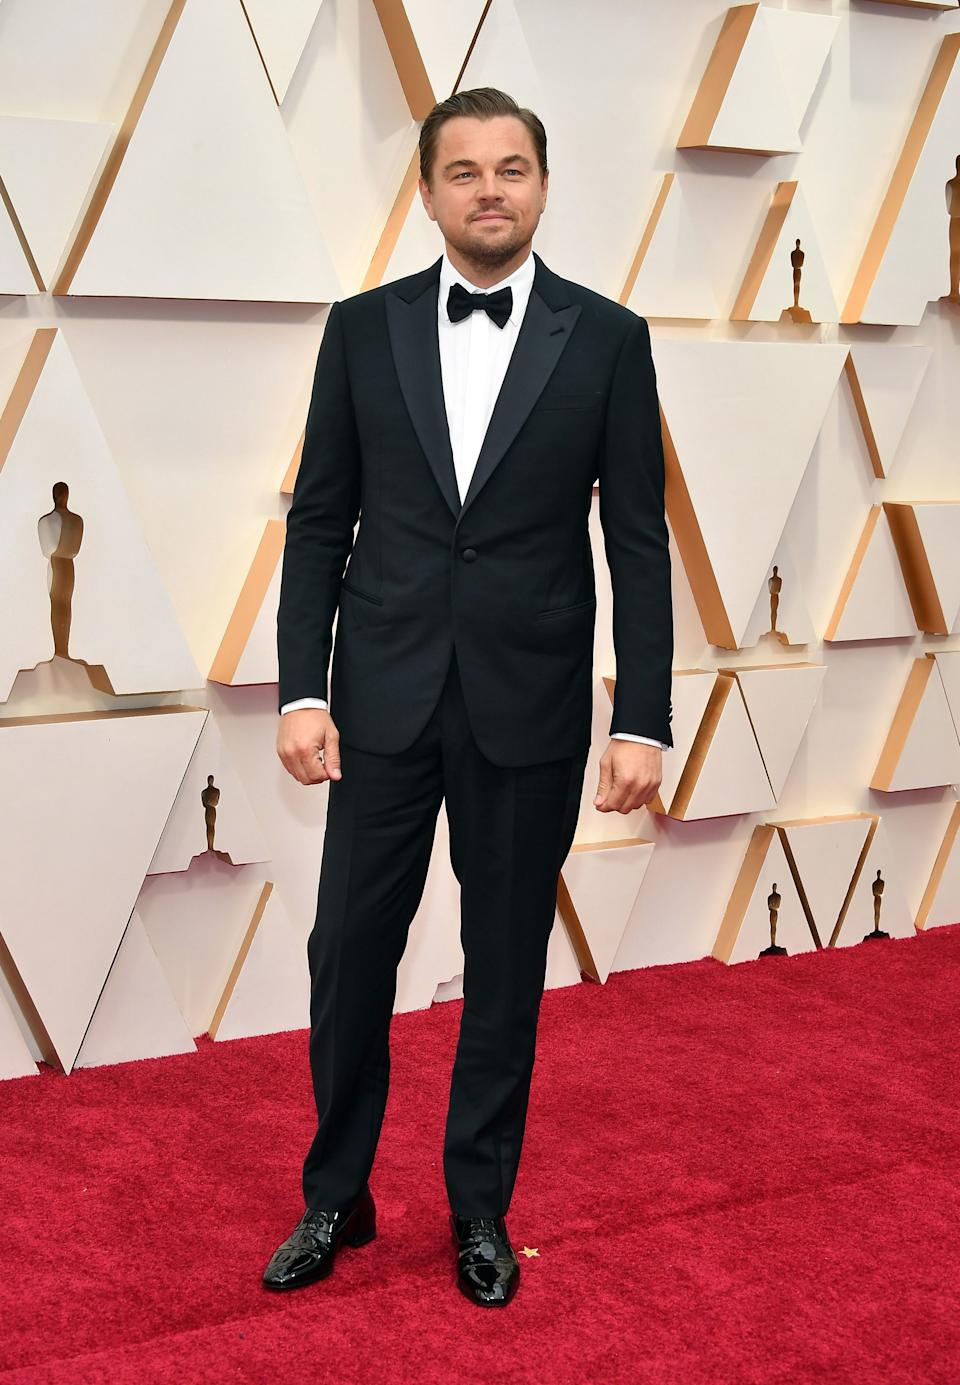 DiCaprio looked polished in a tailored tux as he arrived solo on the Oscars red carpet.